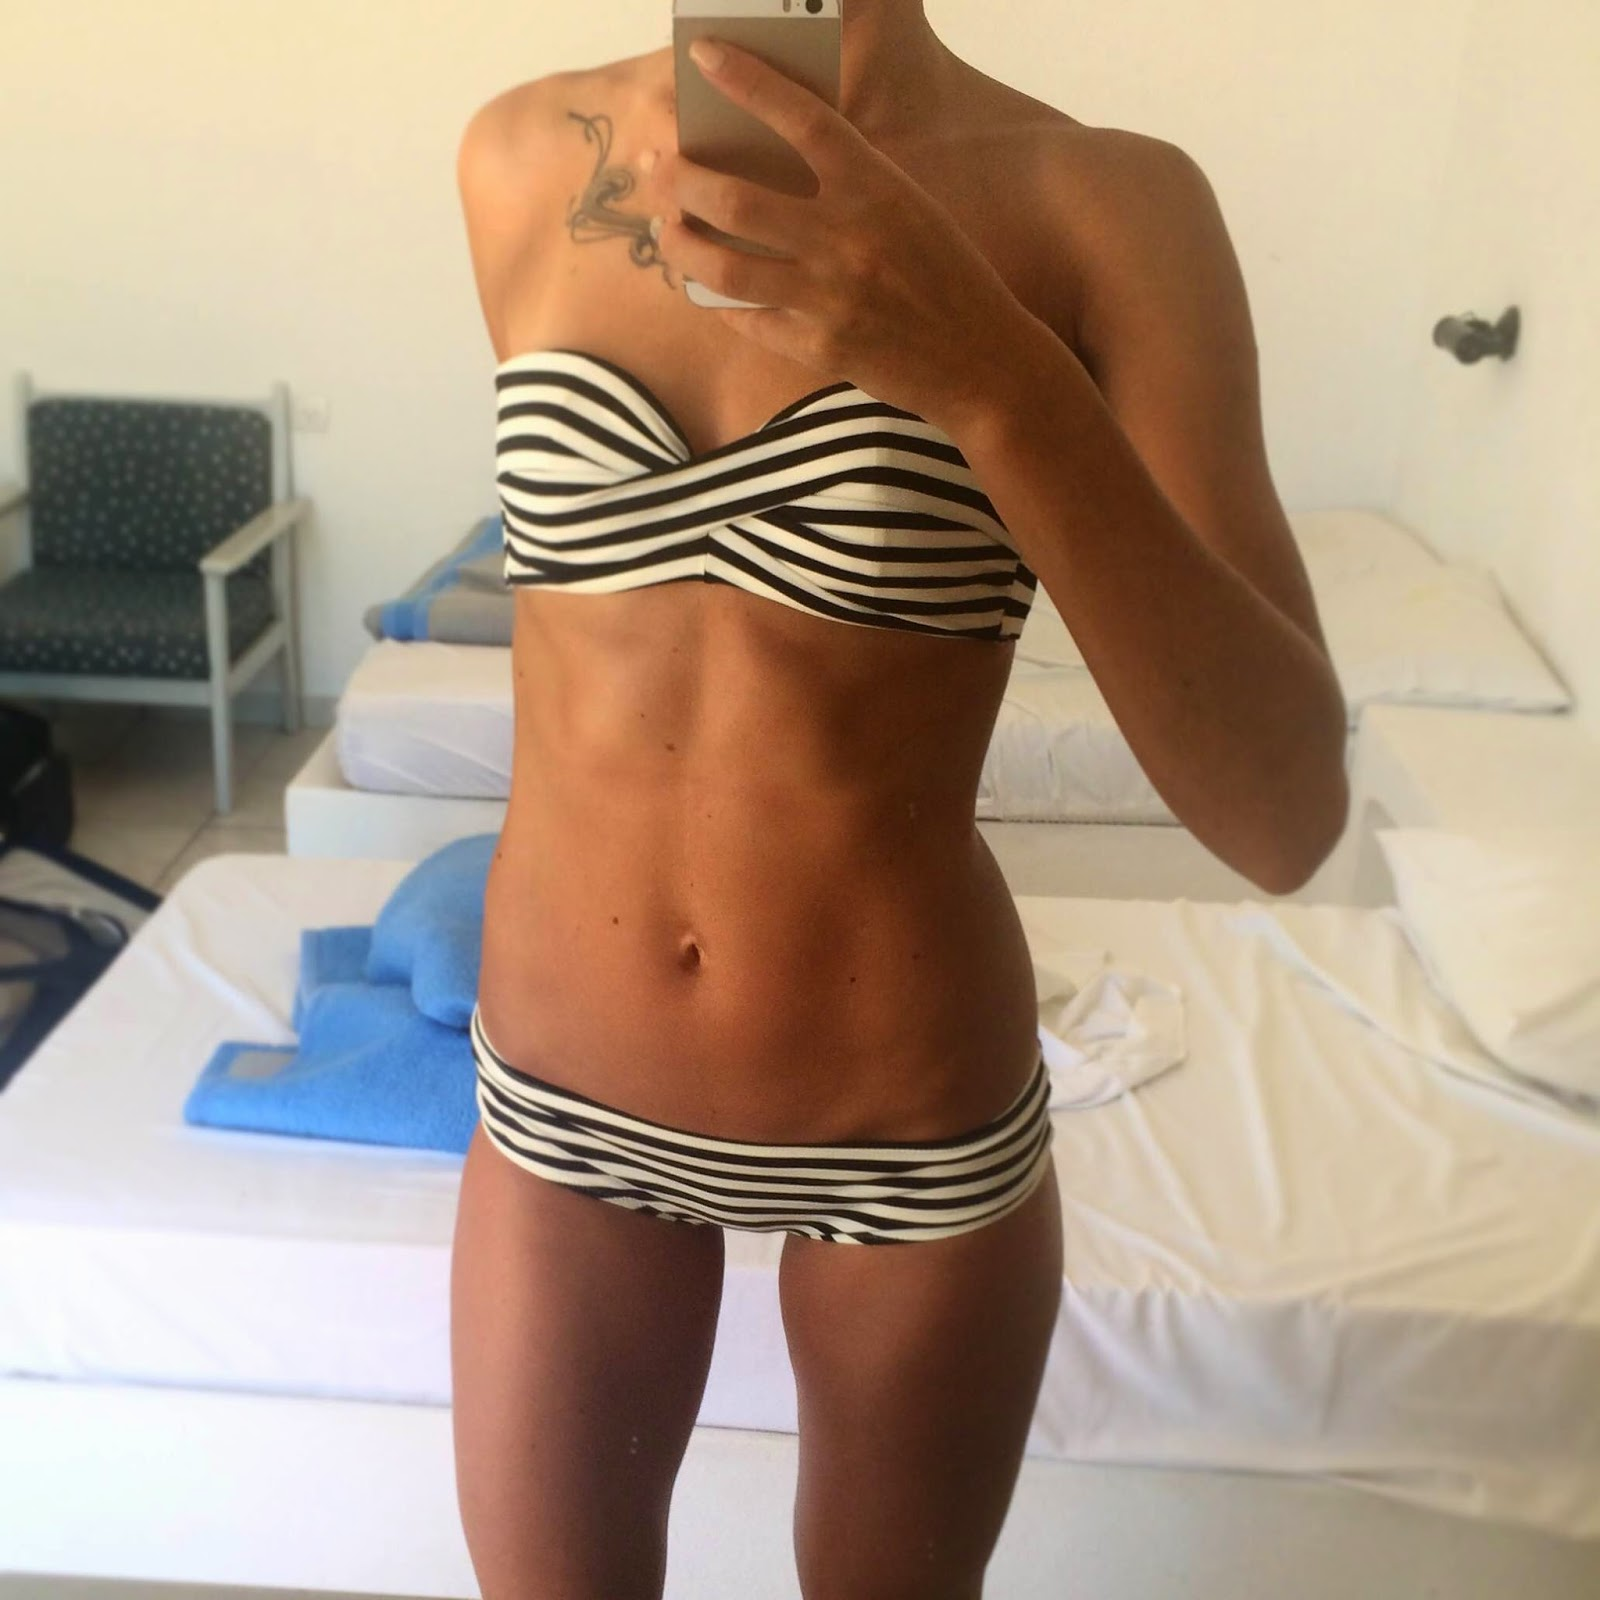 black-white-striped-hm-bikini-body-fitness